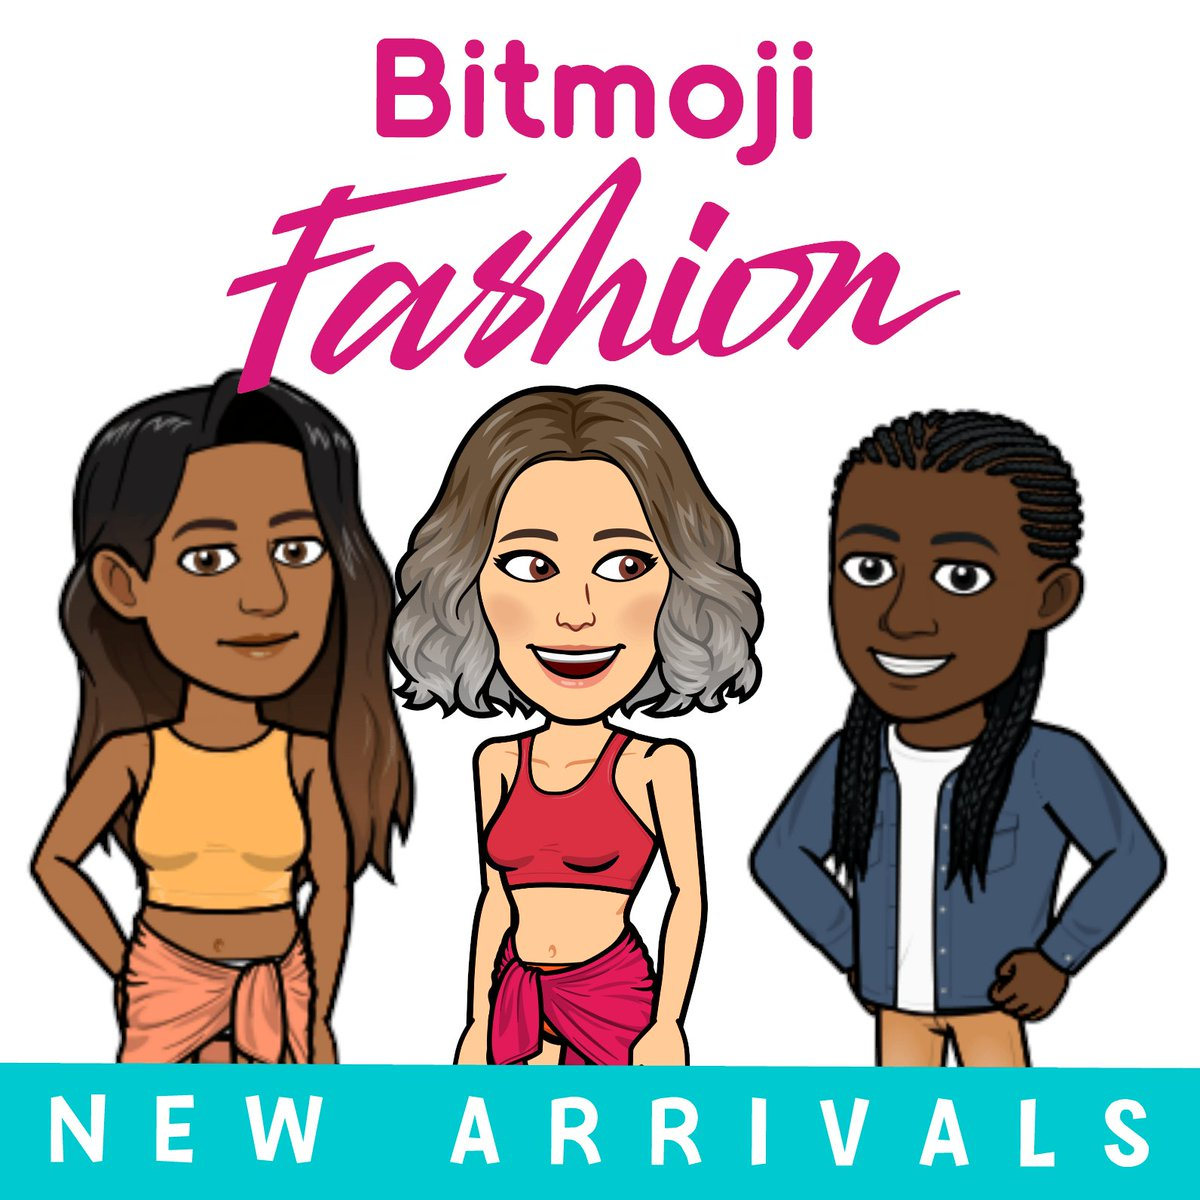 ✨Our powerful duo: newmojis and new outfits✨ https://t.co/vENCgrhpvj